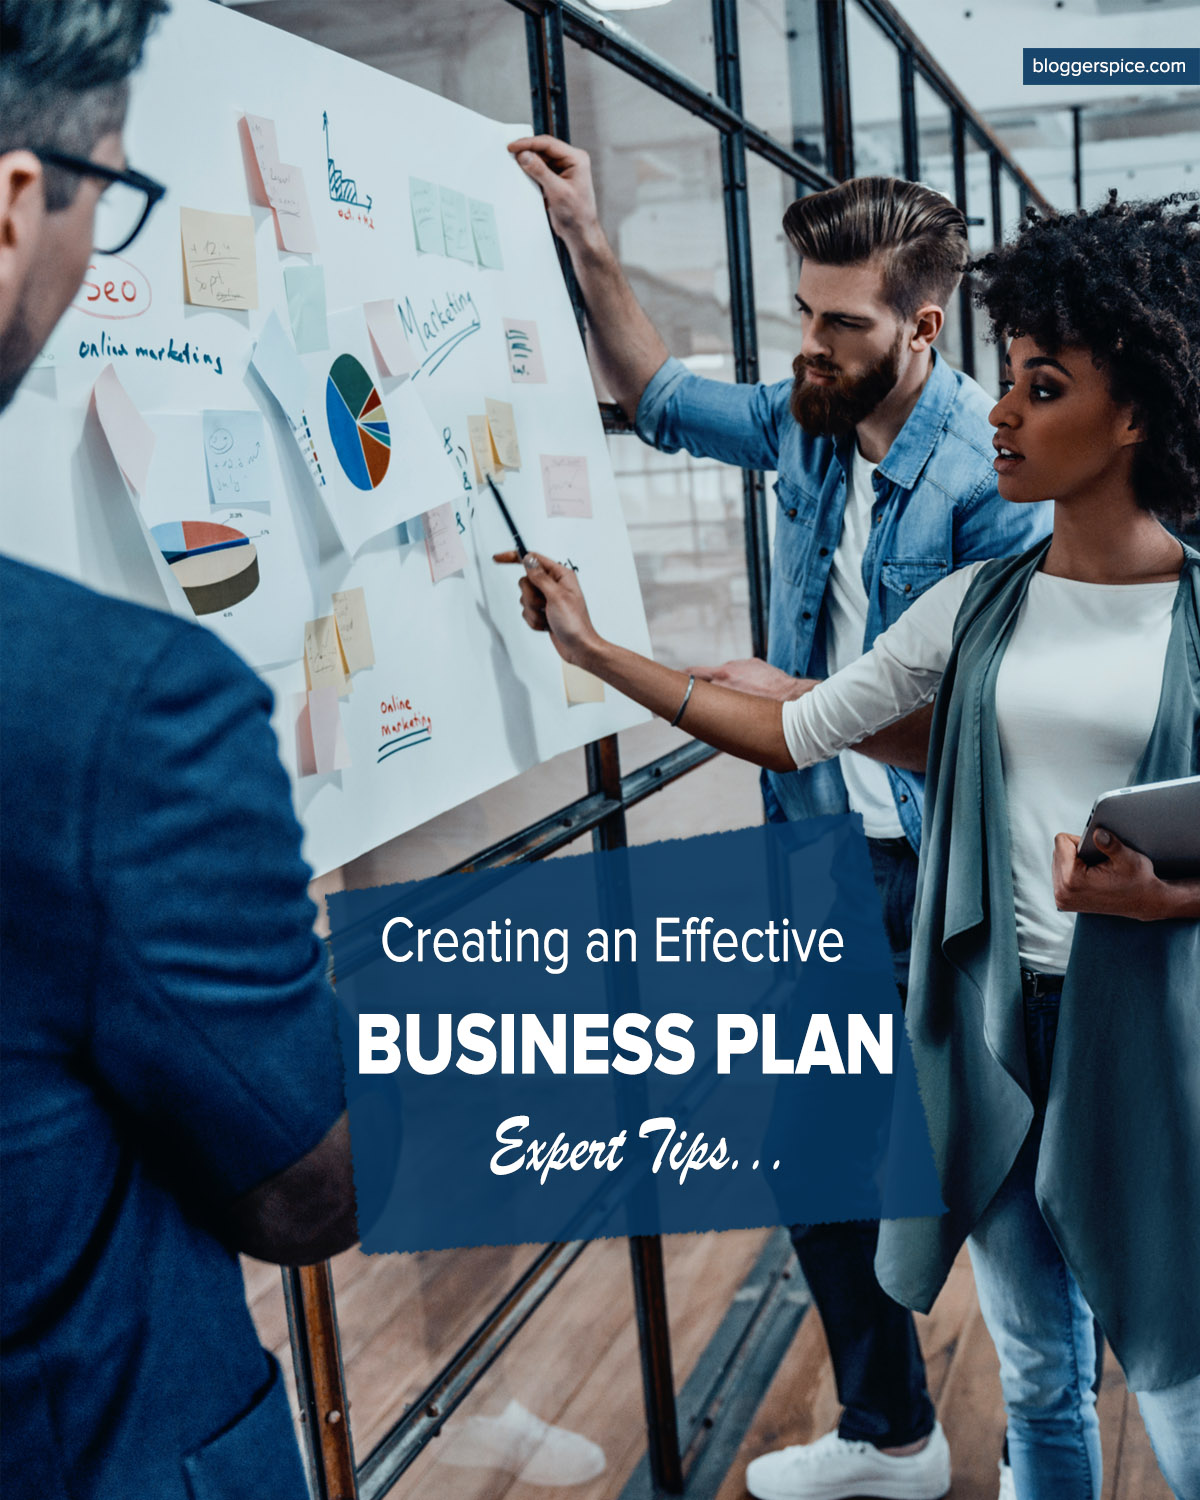 Top 5 Tips to Create an Effective Business Plan